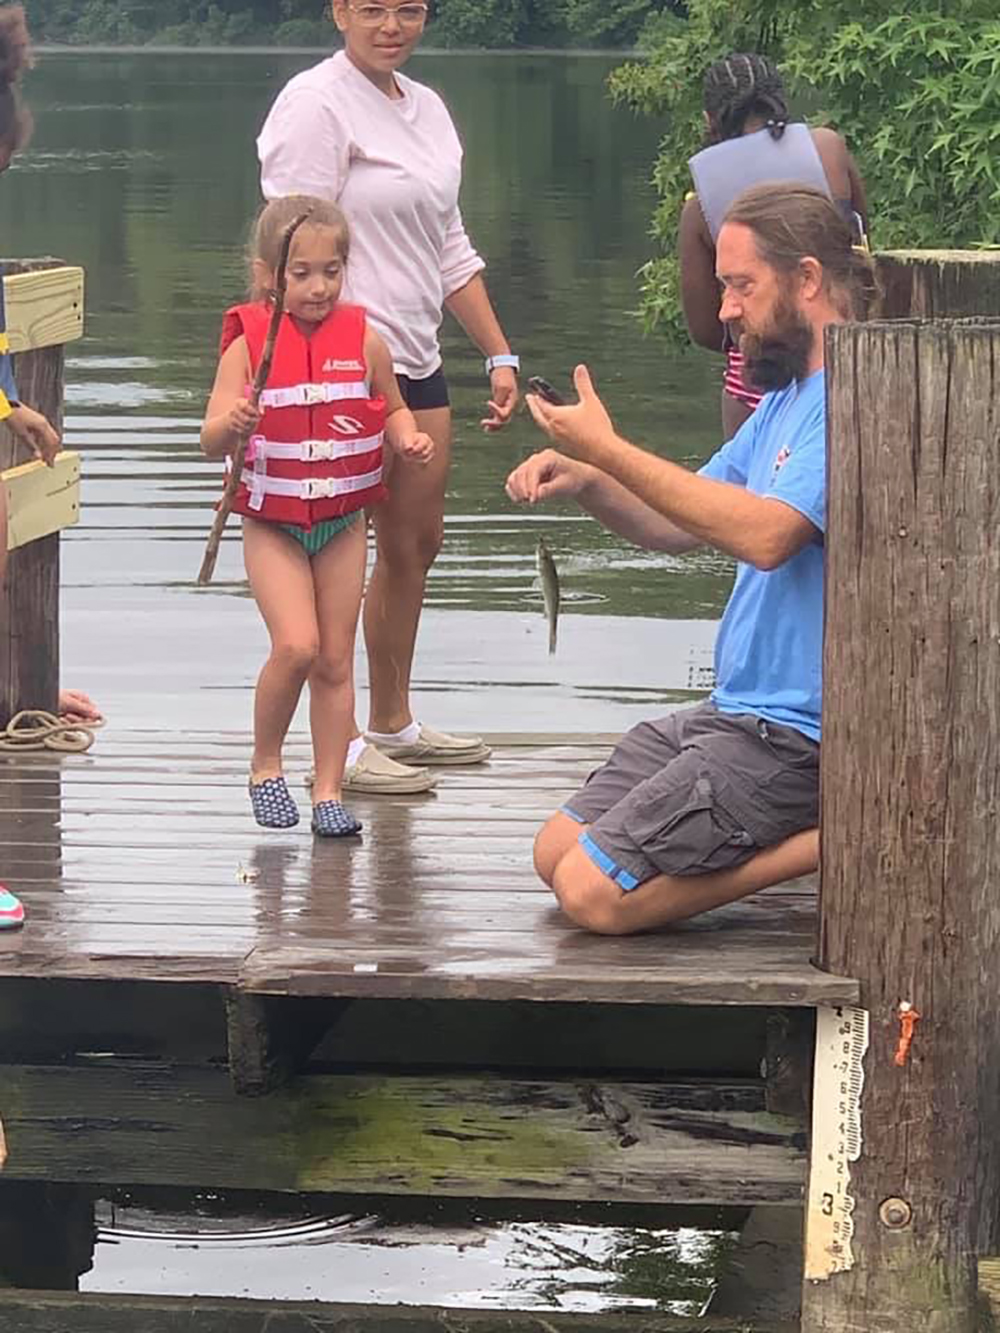 Fishing lesson. Photo credit: Baltimore County Sailing Center